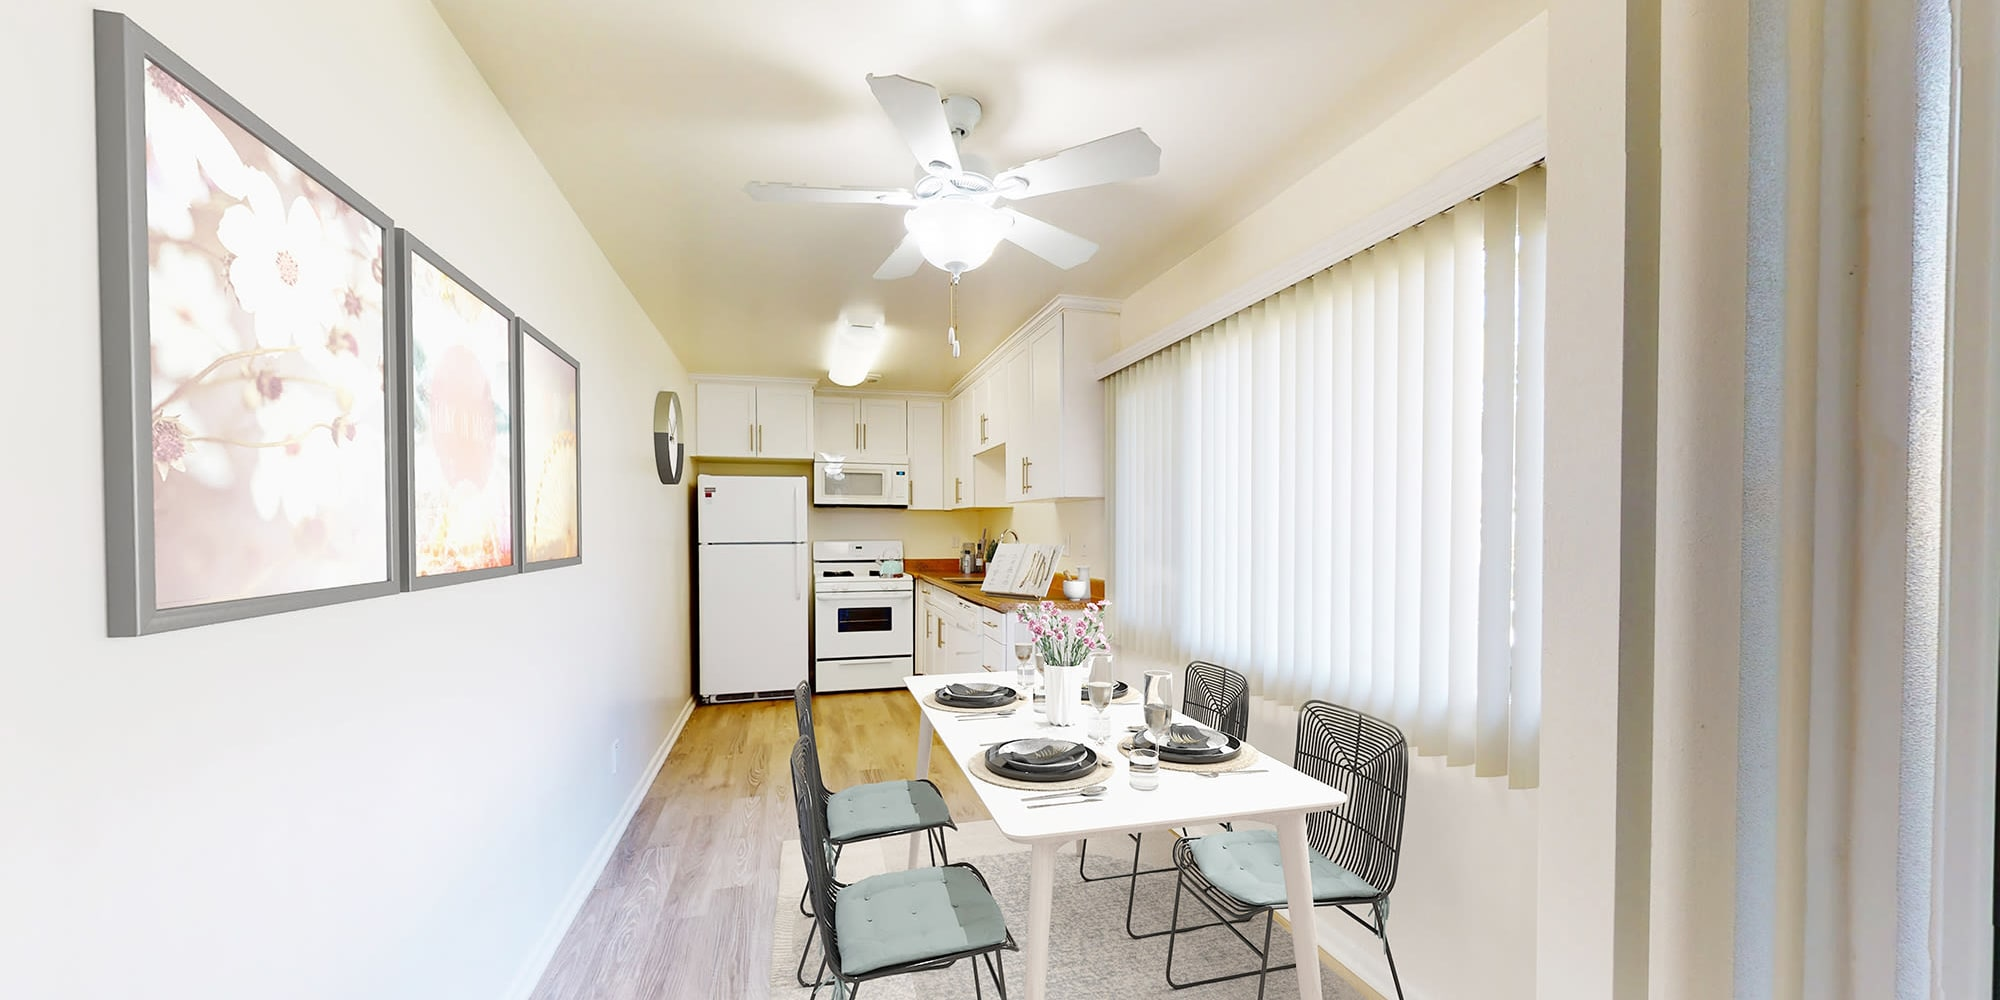 View of the kitchen from the dining area of a model two bedroom home at West Park Village in Los Angeles, California